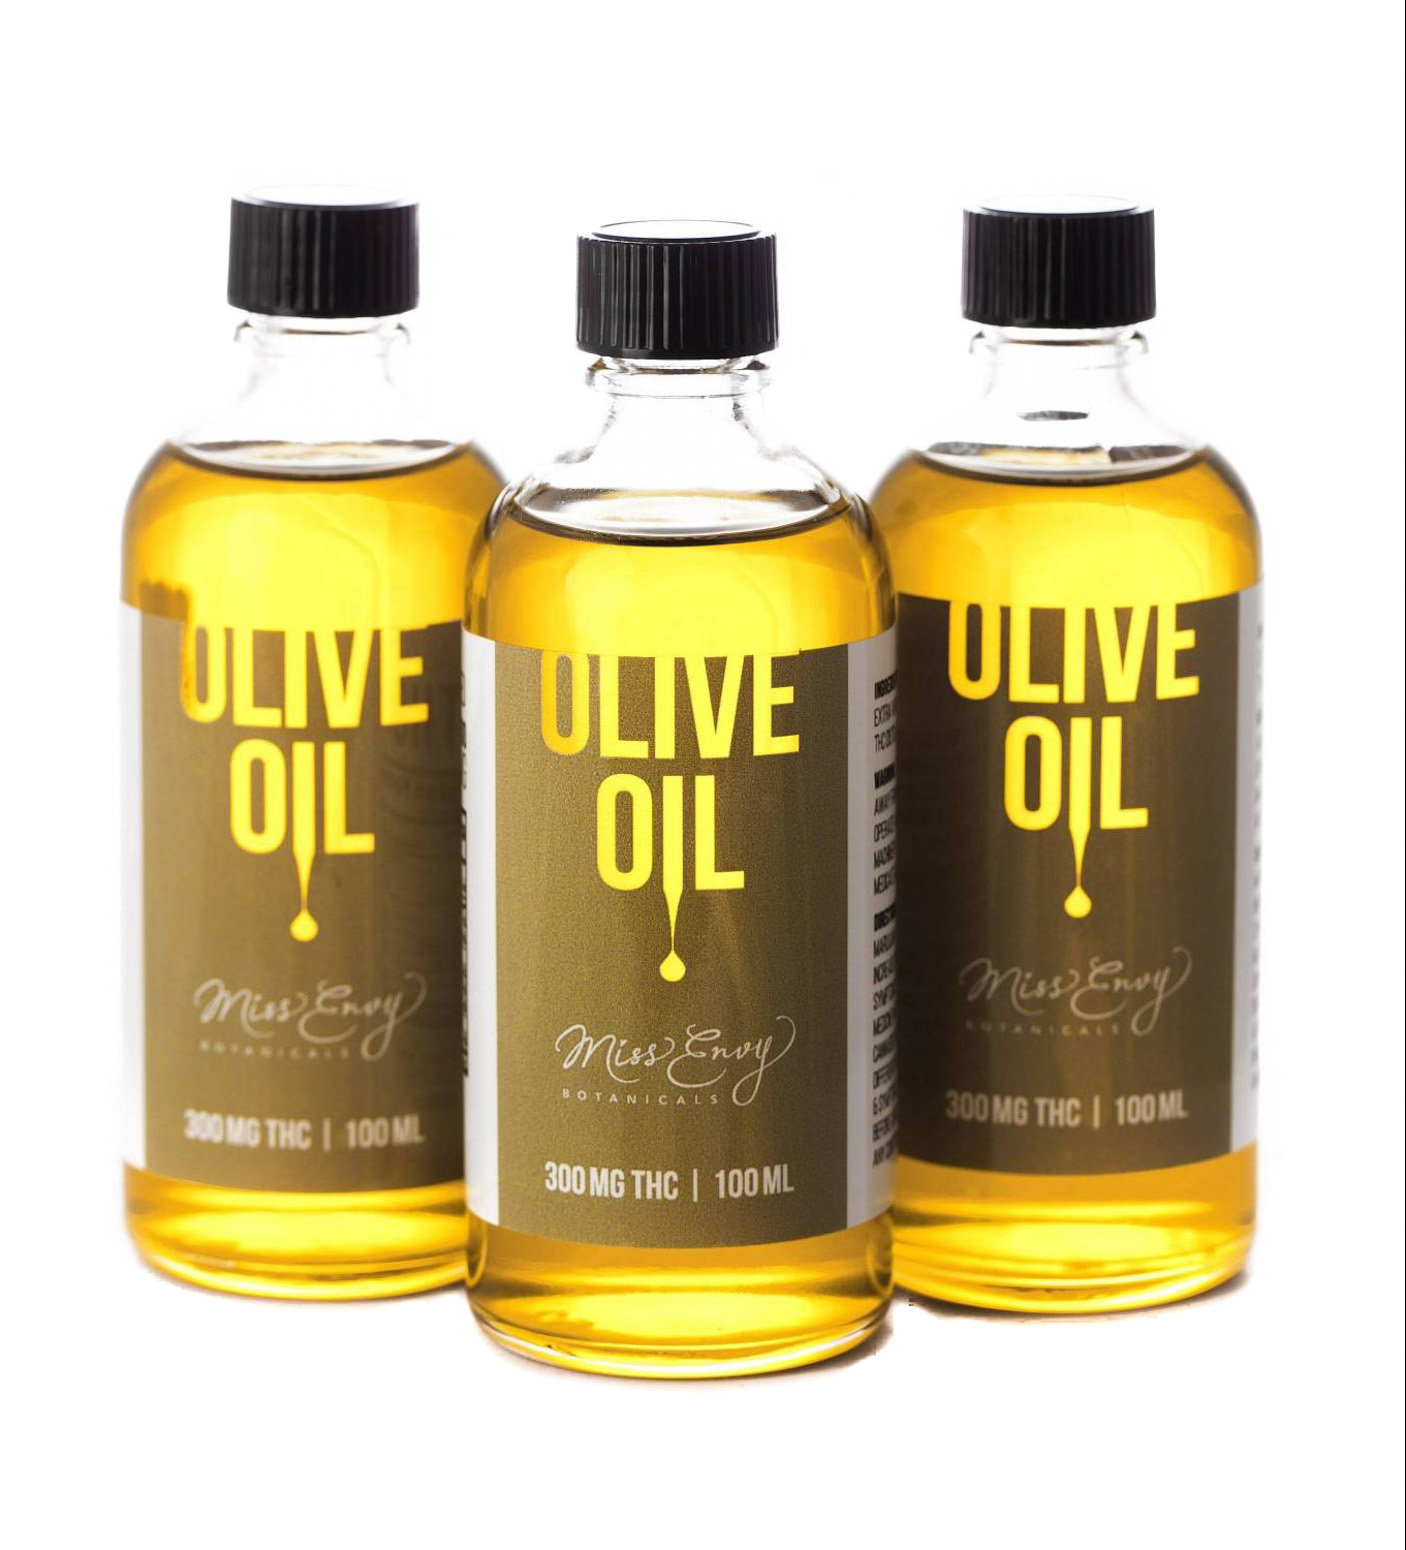 THC Olive Oil by Miss Envy Botanicals (300mg THC)